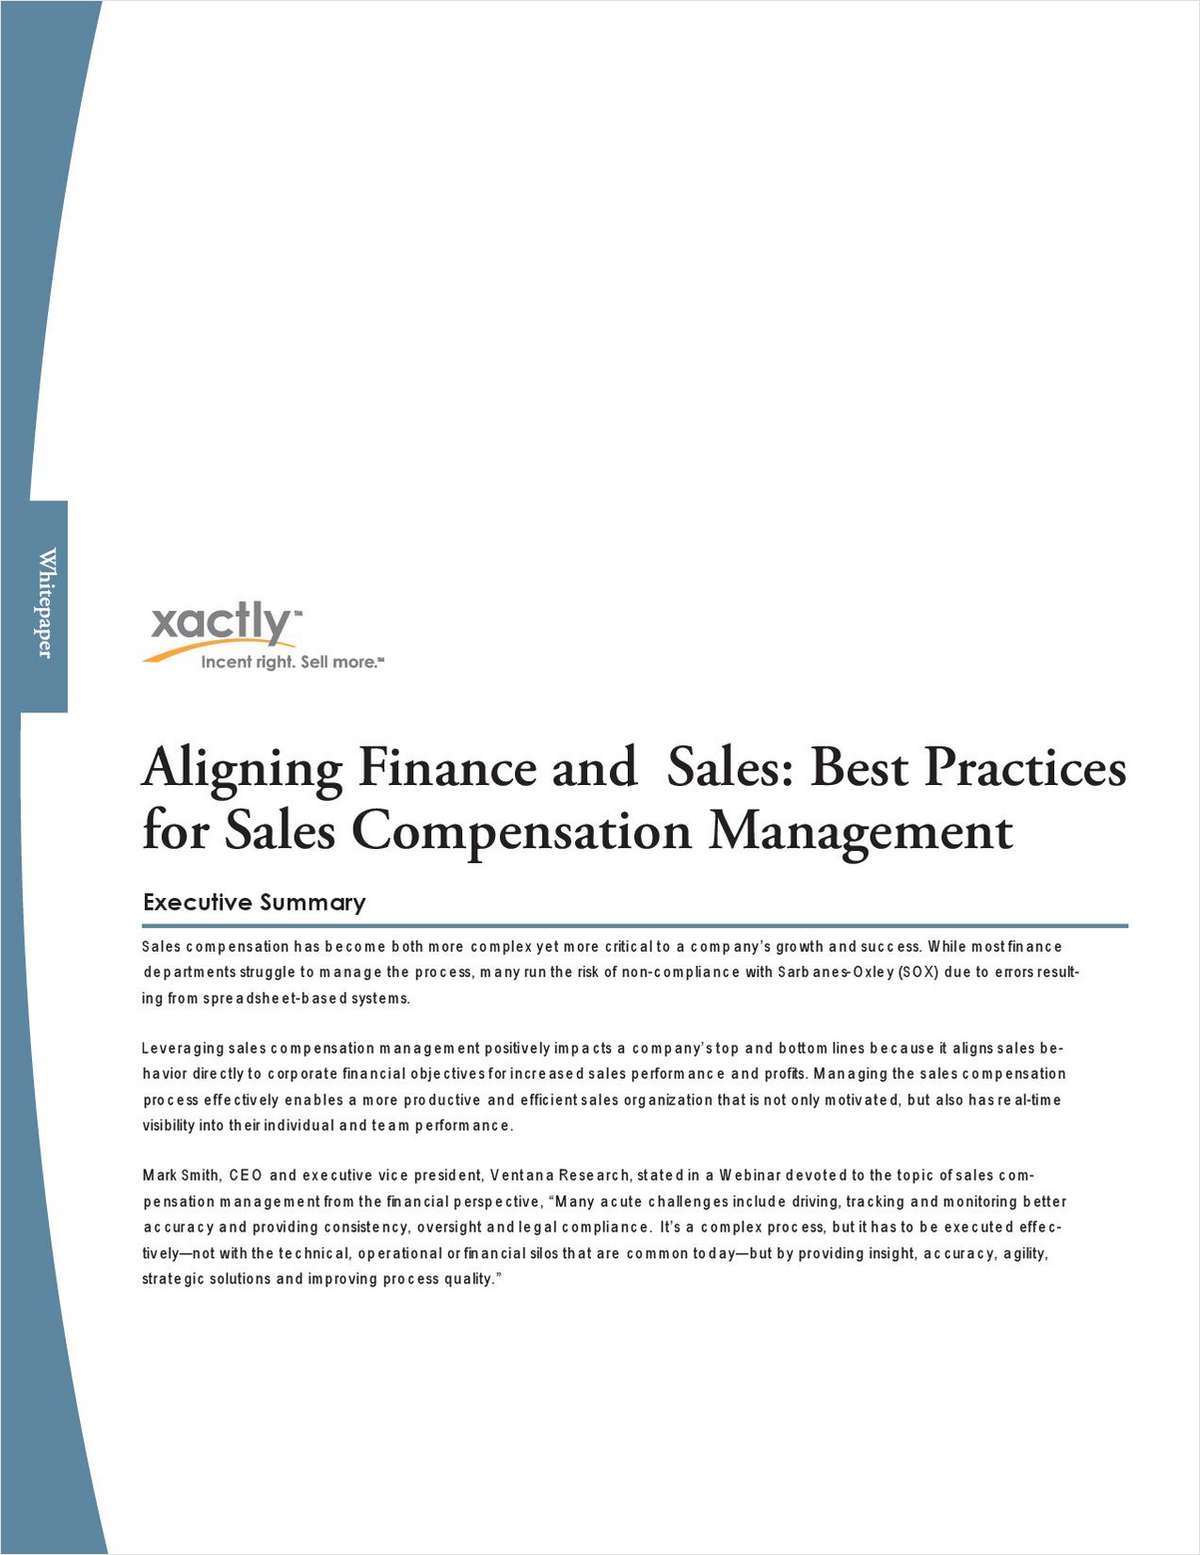 Aligning Finance and Sales: Best Practices for Sales Compensation Management